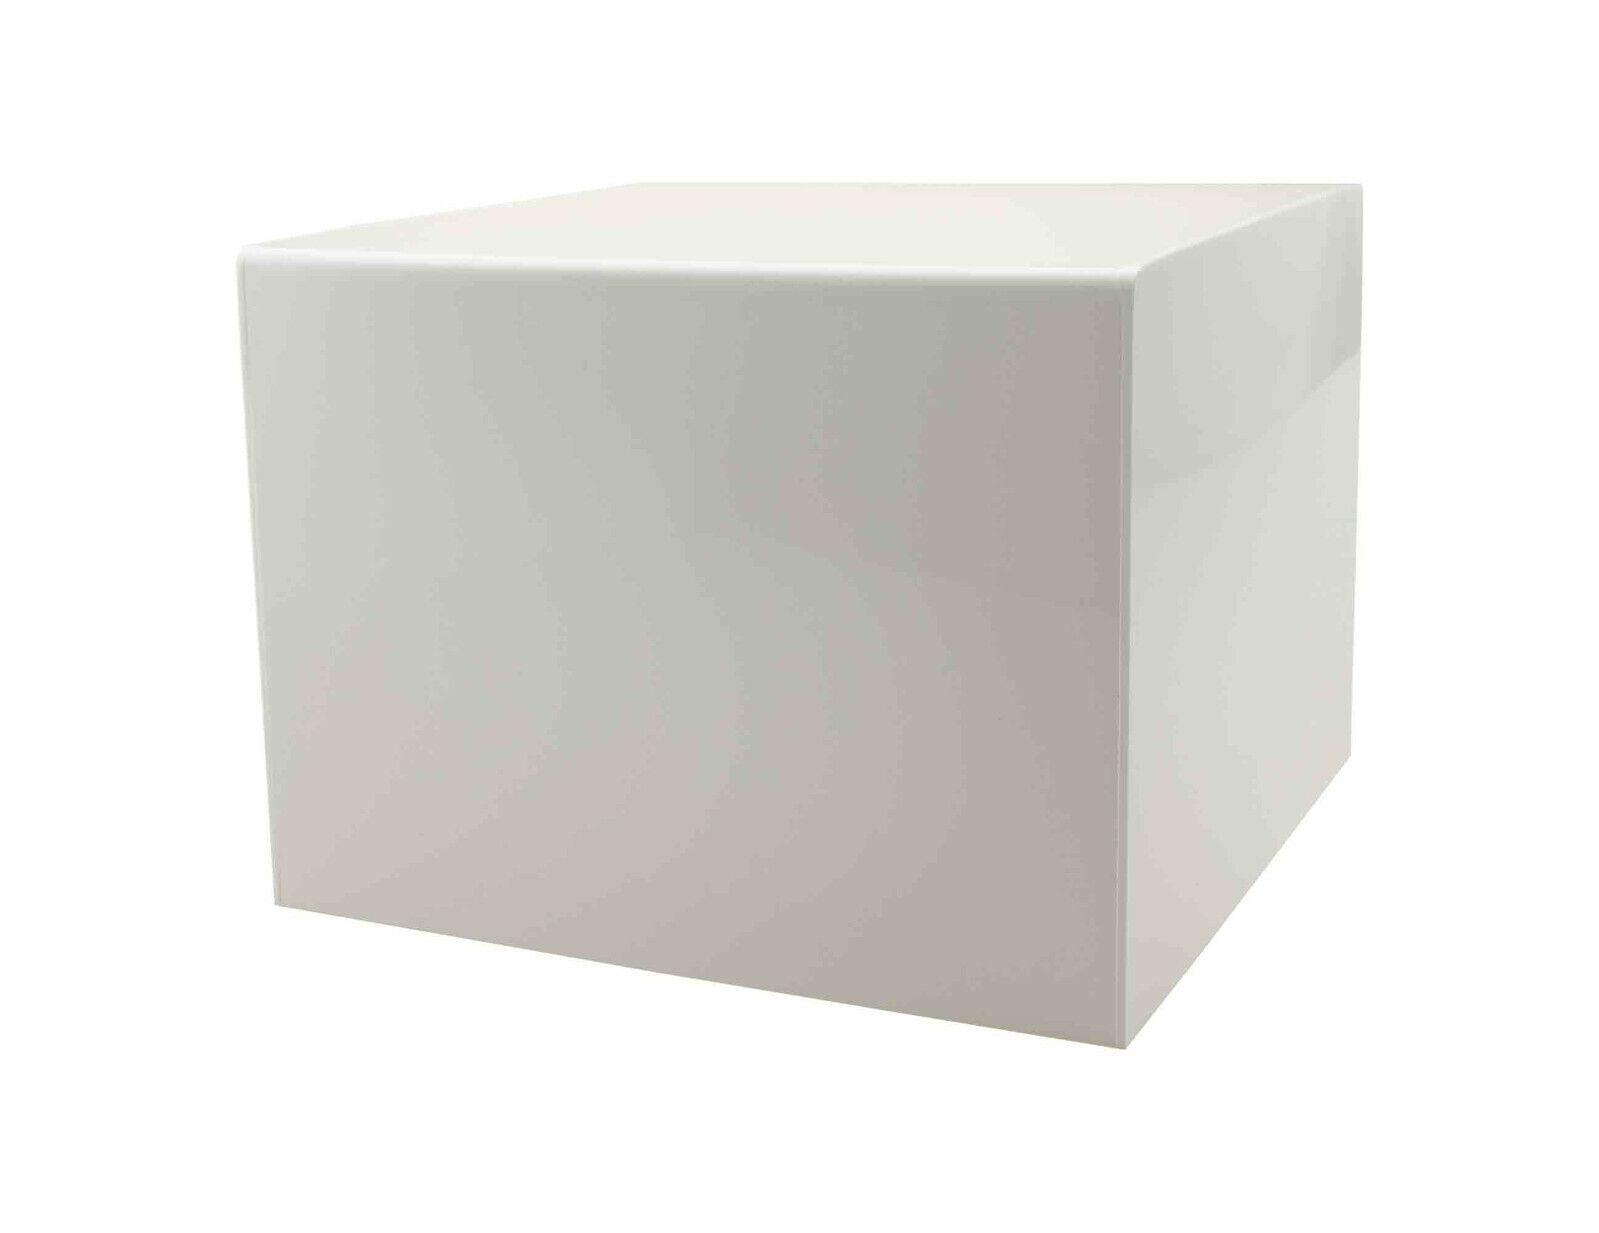 5 Sided Display Cube Pedestal Art Sculpture Stand 12  x 12  x 9  in White